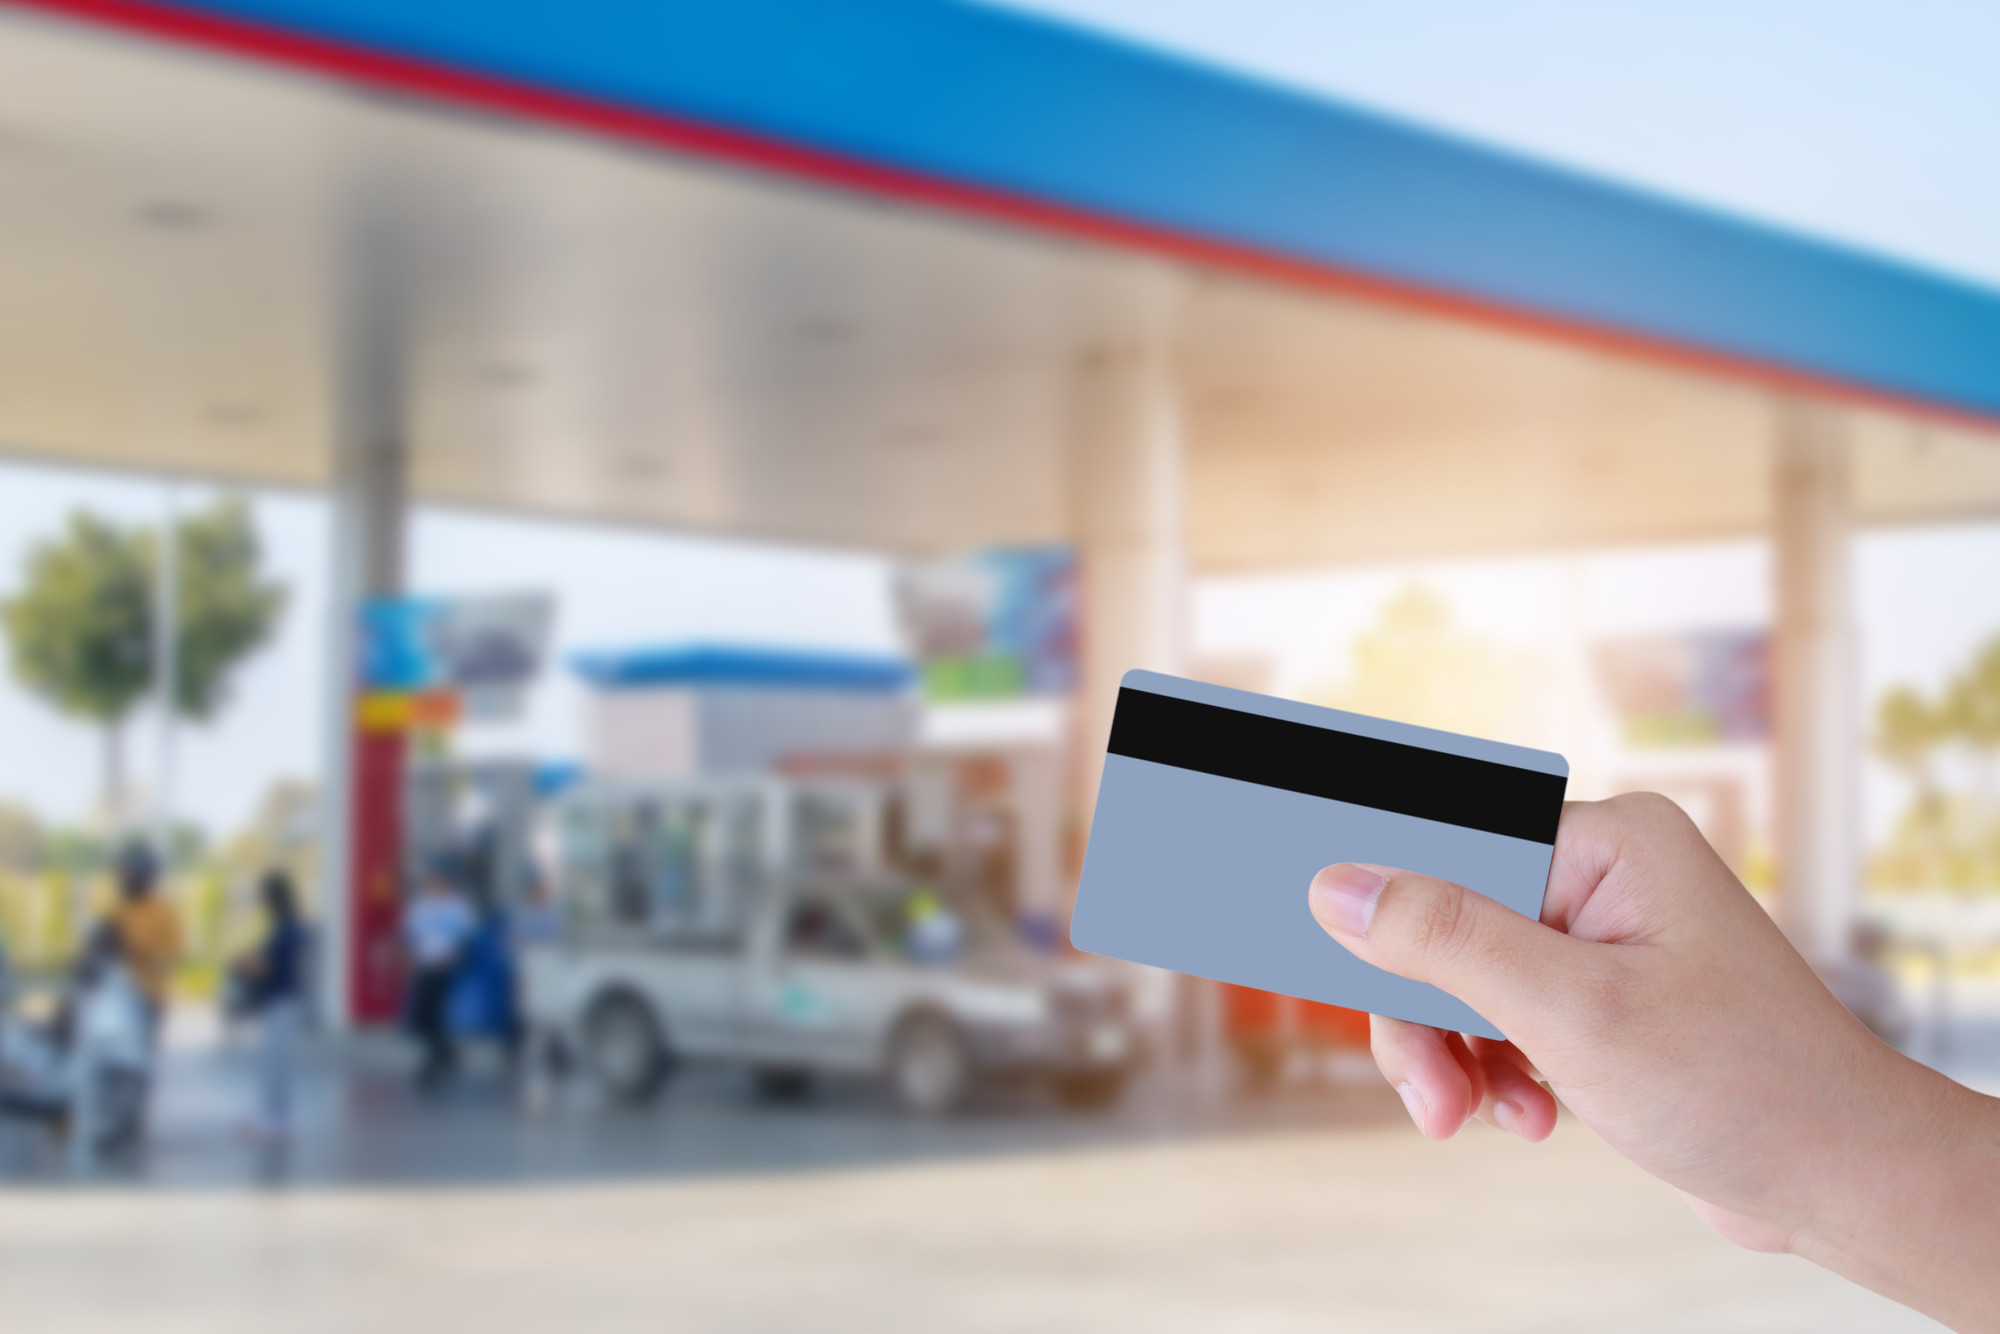 fuel station and credit card